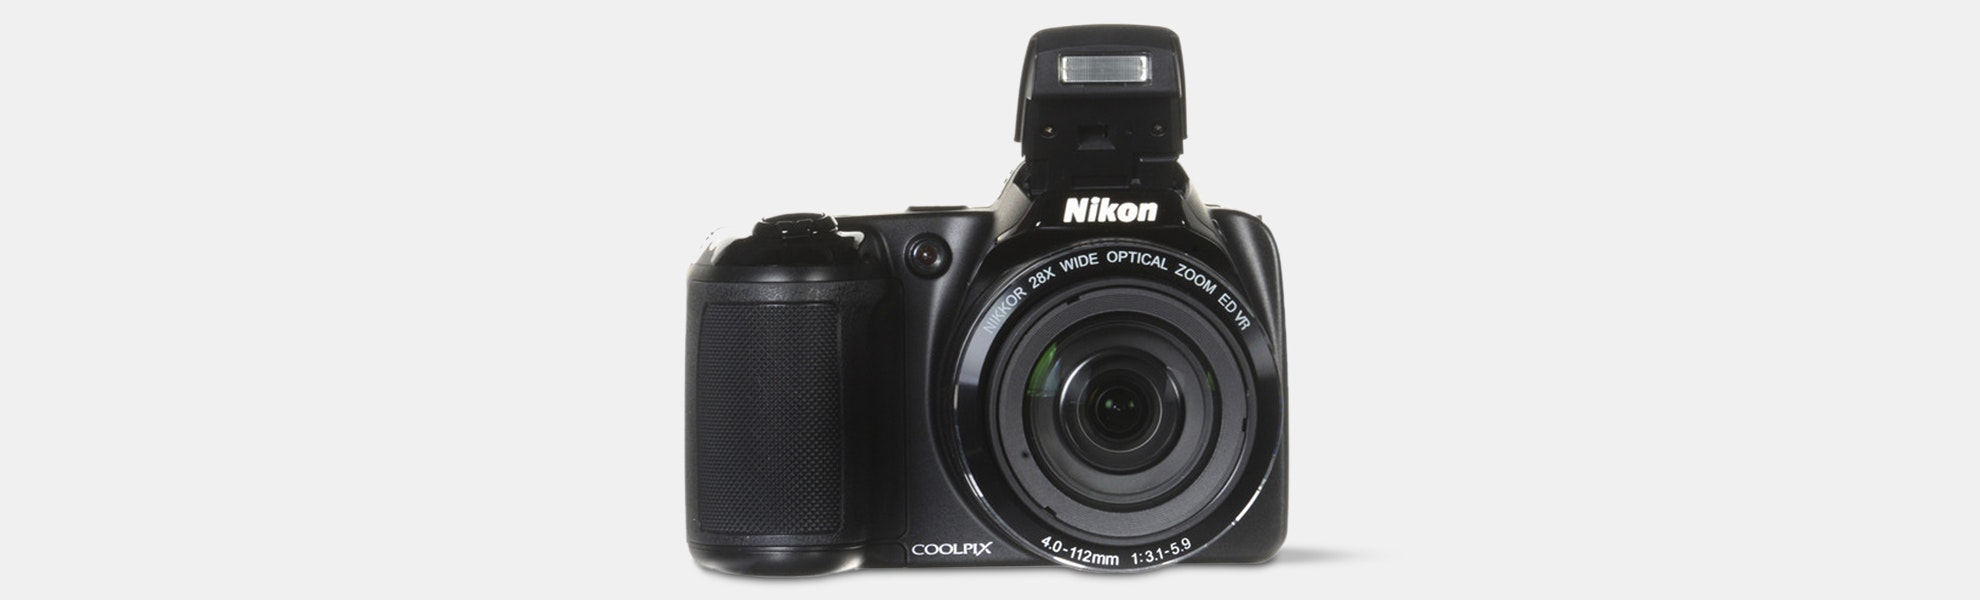 Nikon Coolpix L340 20.2 MP Digital Camera Refurbish